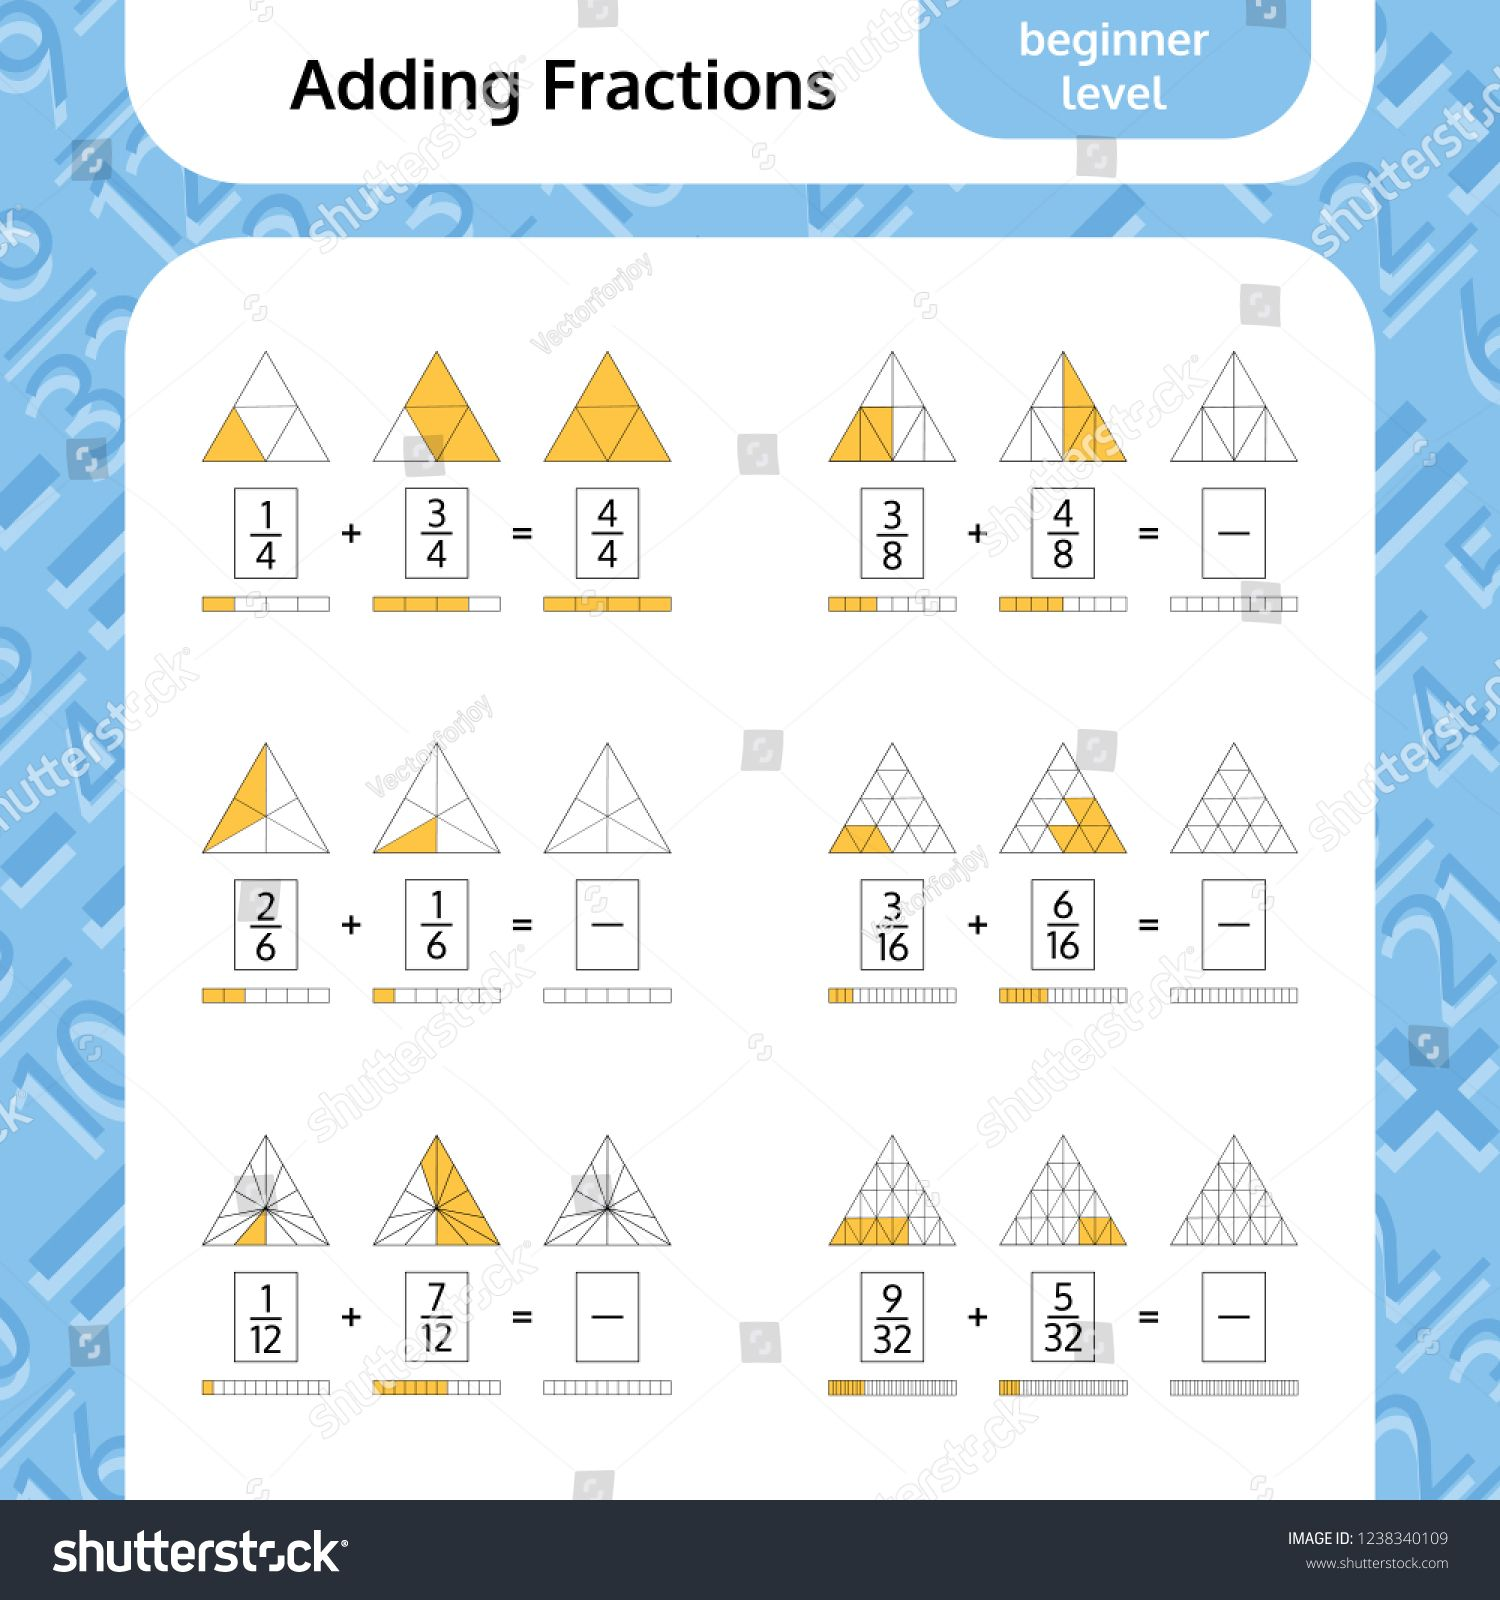 Adding Fractions Mathematical Worksheet Triangles Coloring Book Page Math Puzzle Educational Game Vector Illustra Fractions Adding Fractions Maths Puzzles Adding vectors worksheet physics